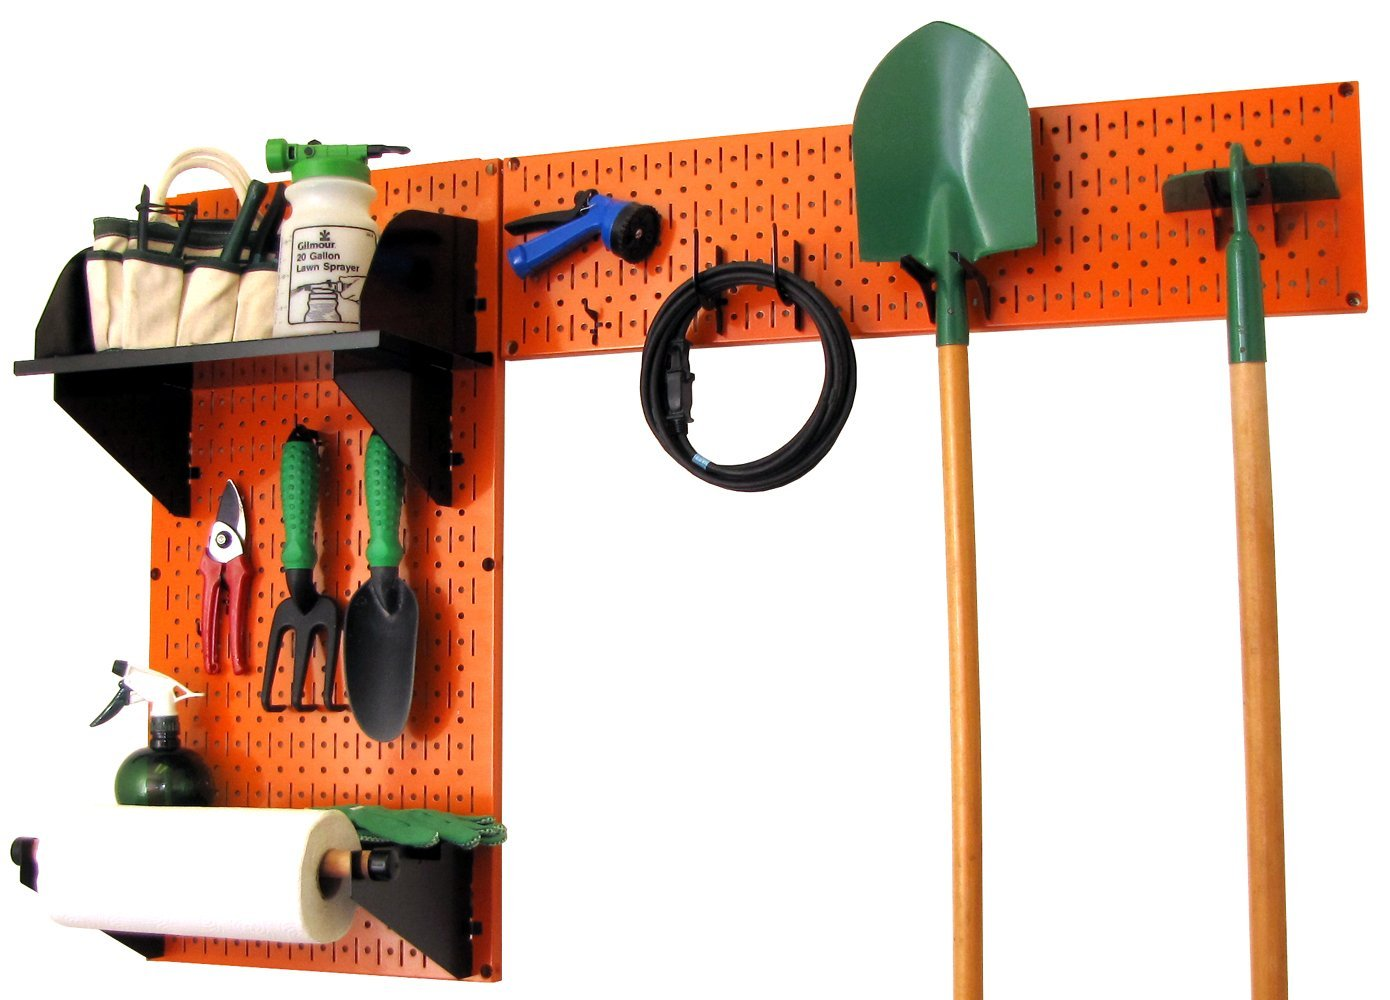 Wall Control 30-GRD-200 BB Pegboard Garden Supplies Storage and Organization Garden Tool Organizer Kit with Black Pegboard and Black Accessories